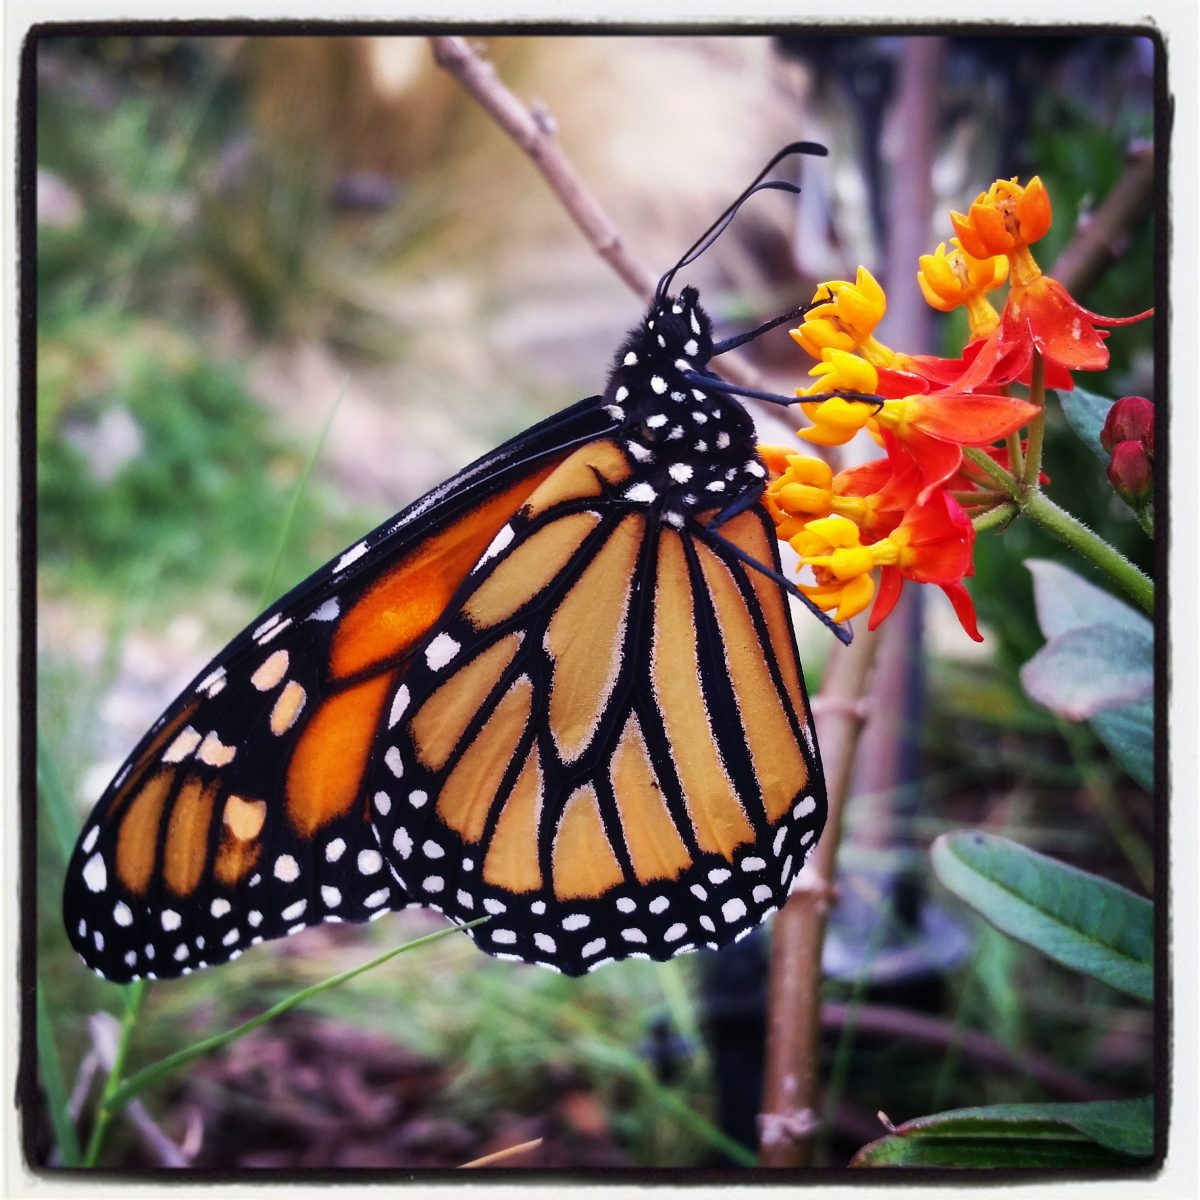 30f50e5bef61f The Sorrow of Daedalus: Performing Prosthetic Surgery on a Monarch Butterfly